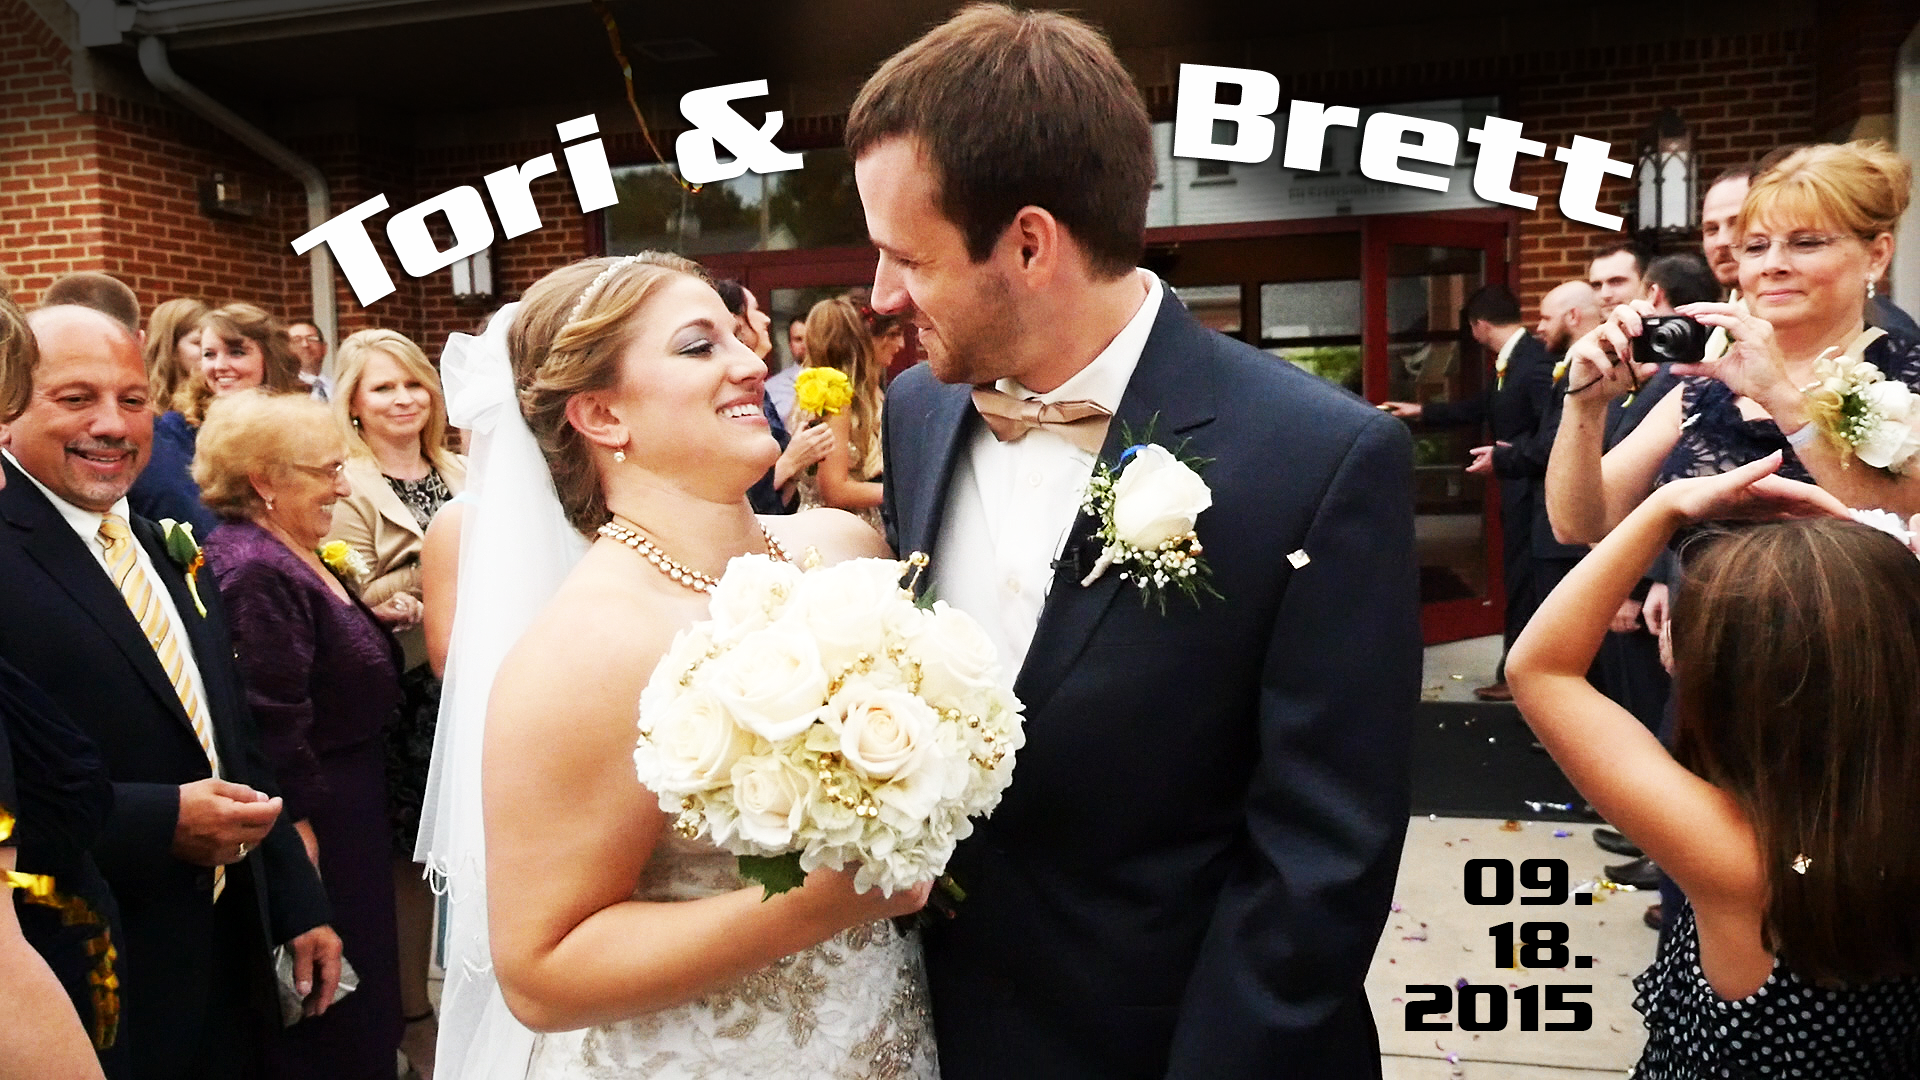 Brett & Tori – Greenville, PA Wedding Video